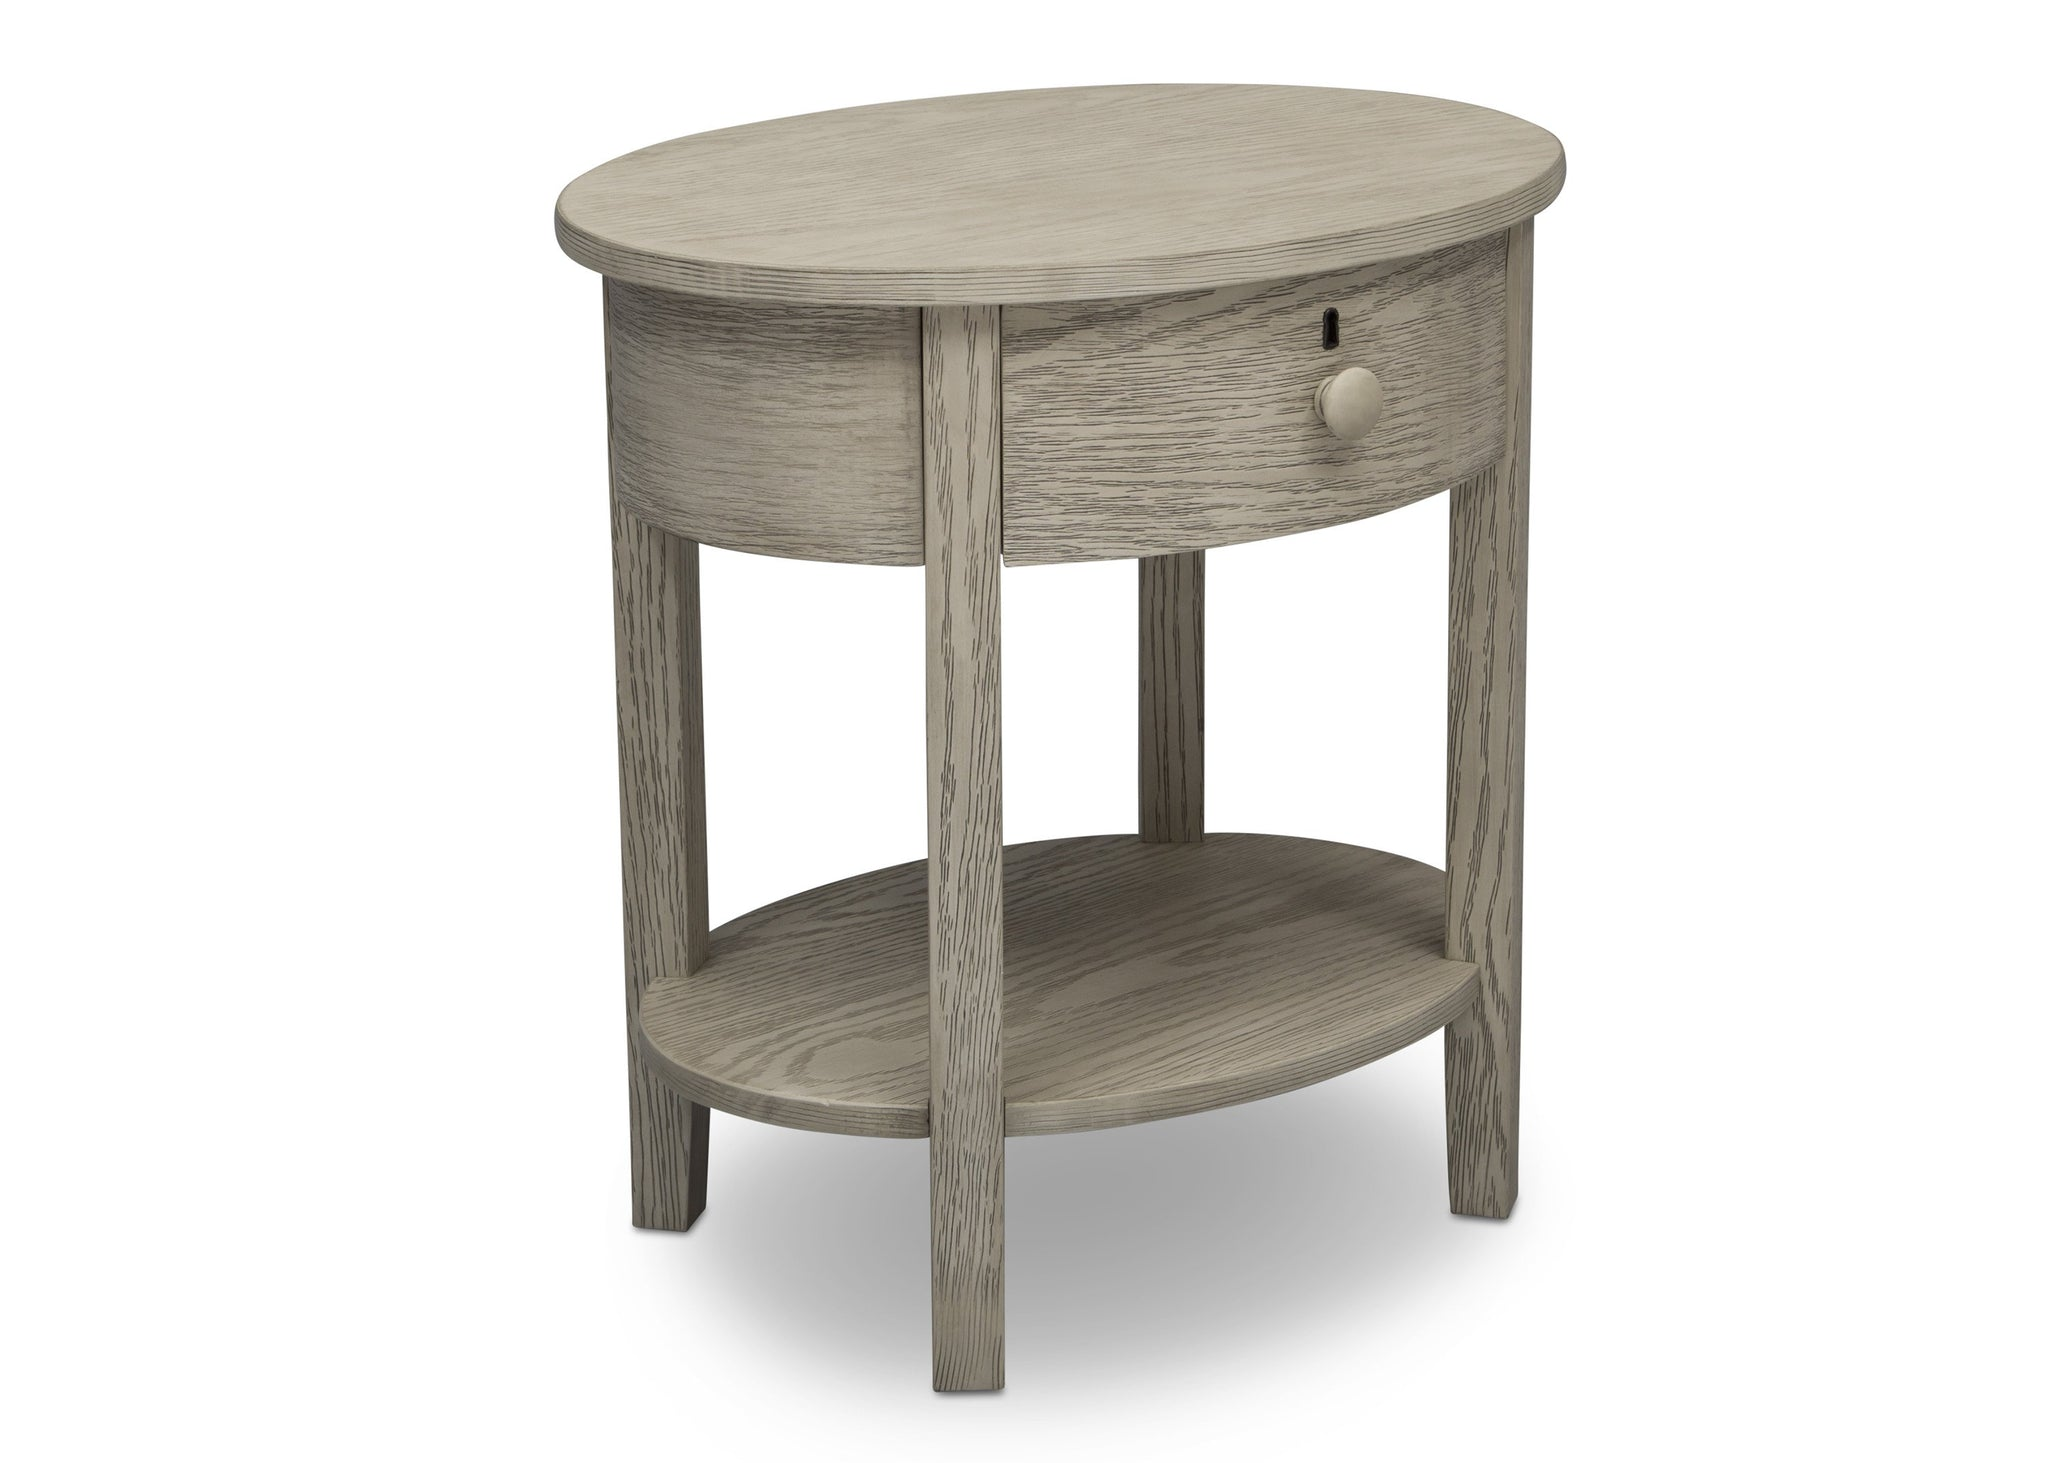 Delta Children Textured Limestone (1340) Farmhouse Nightstand with Drawer, Right Silo View